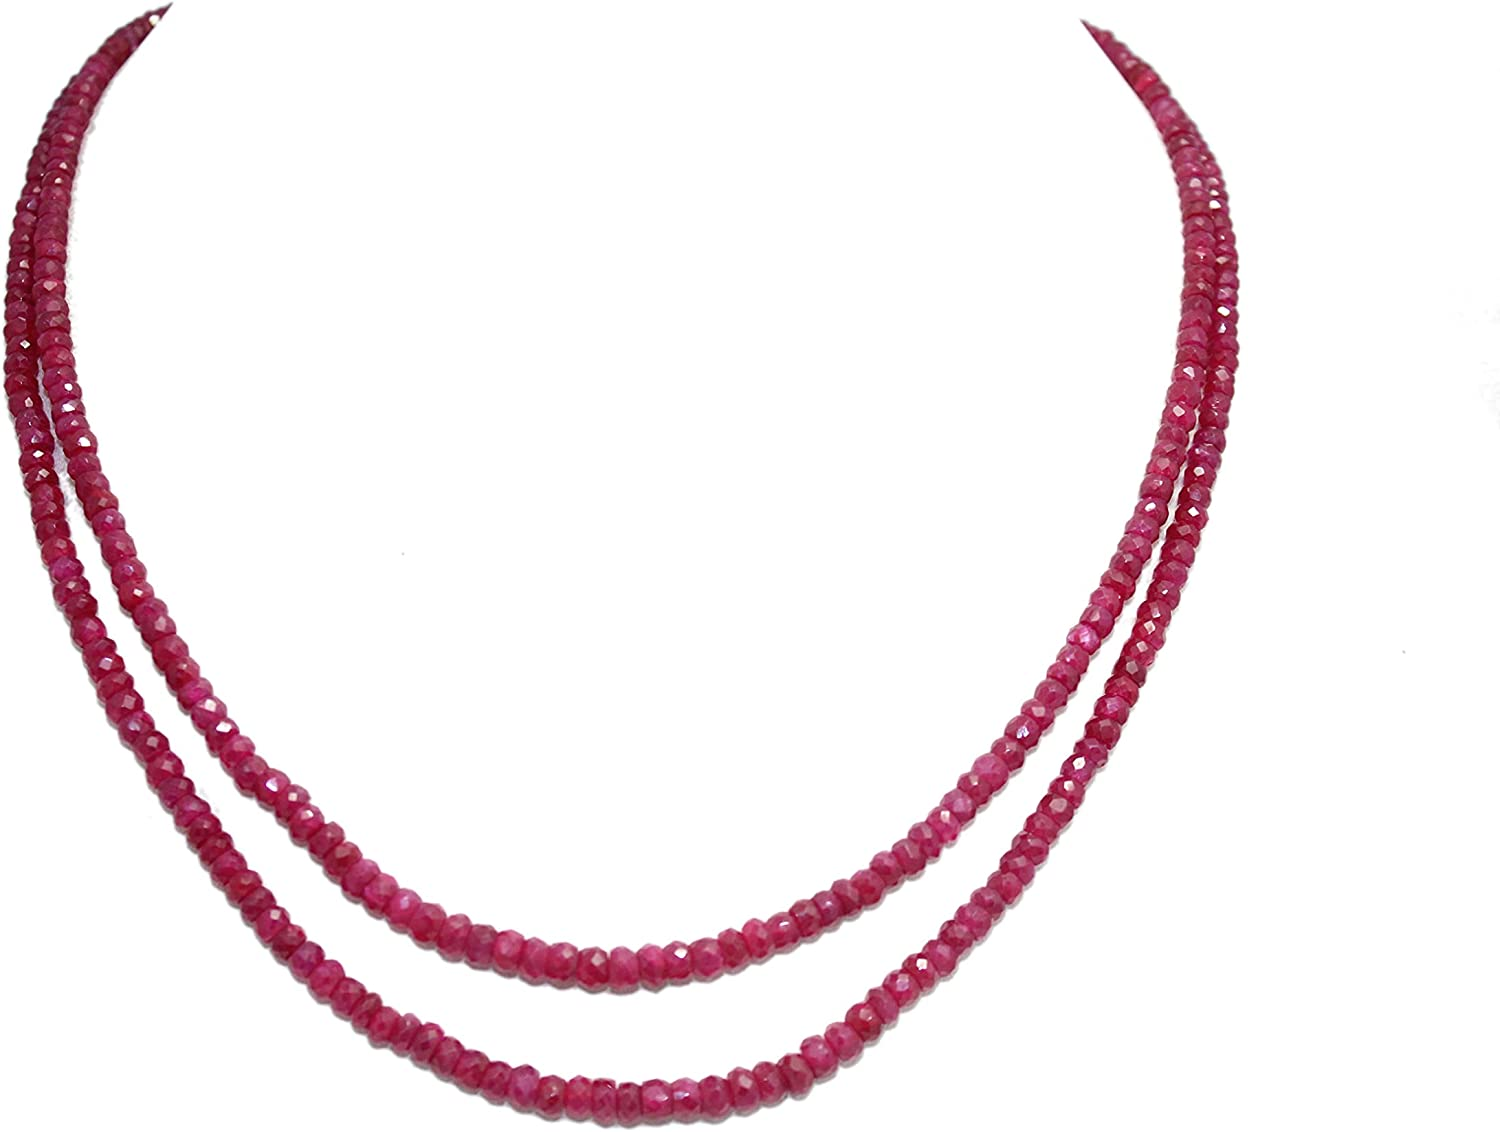 Rajasthan Gems String Strand Necklace Red Ruby oval Cut beads treated stones 2 line P 512